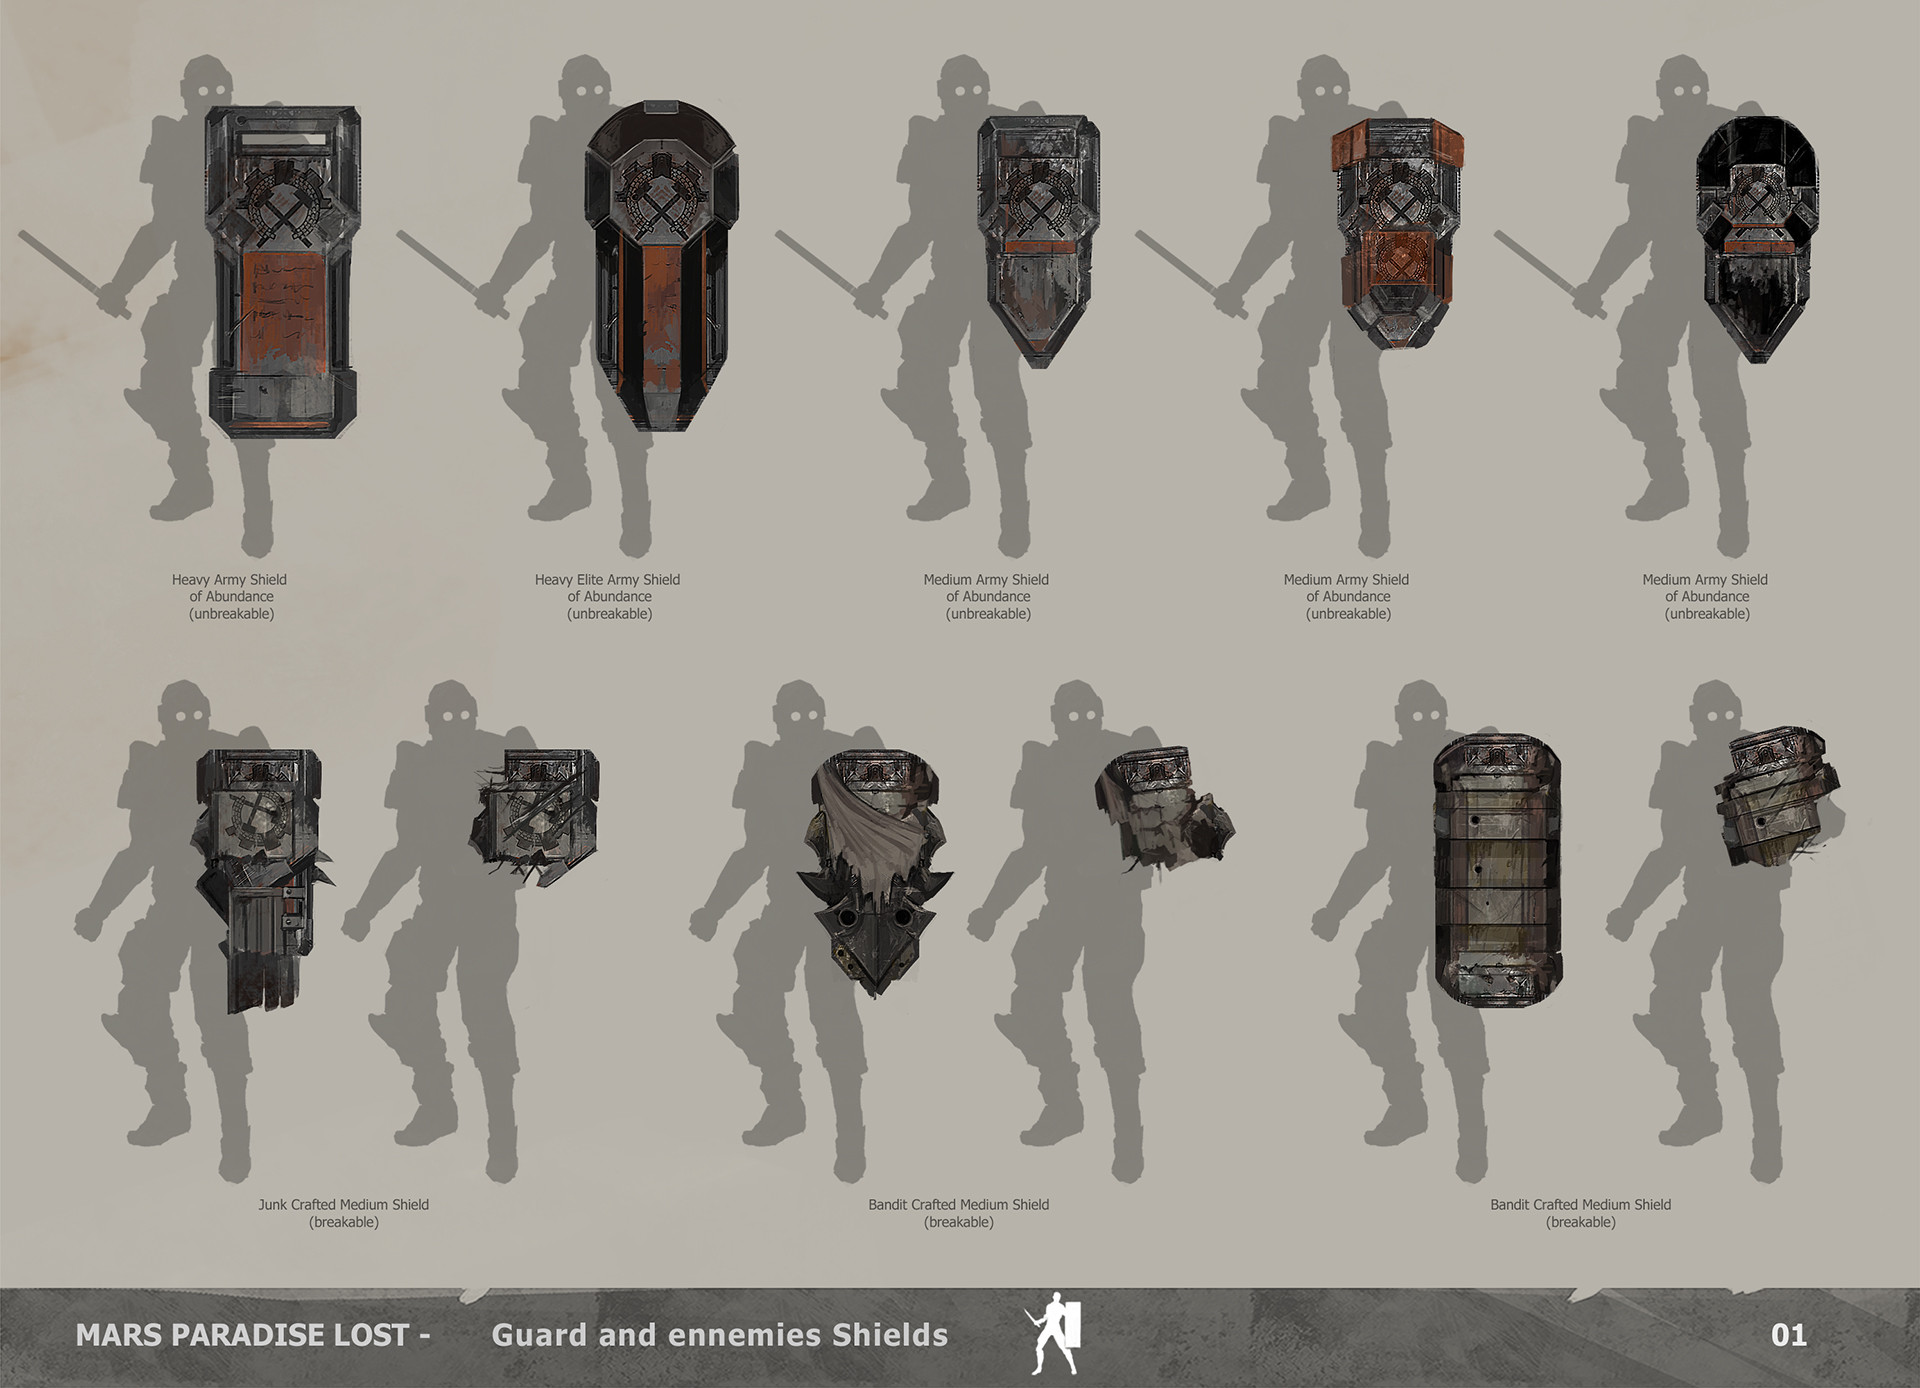 Alexandre chaudret mpl weapon shields research01